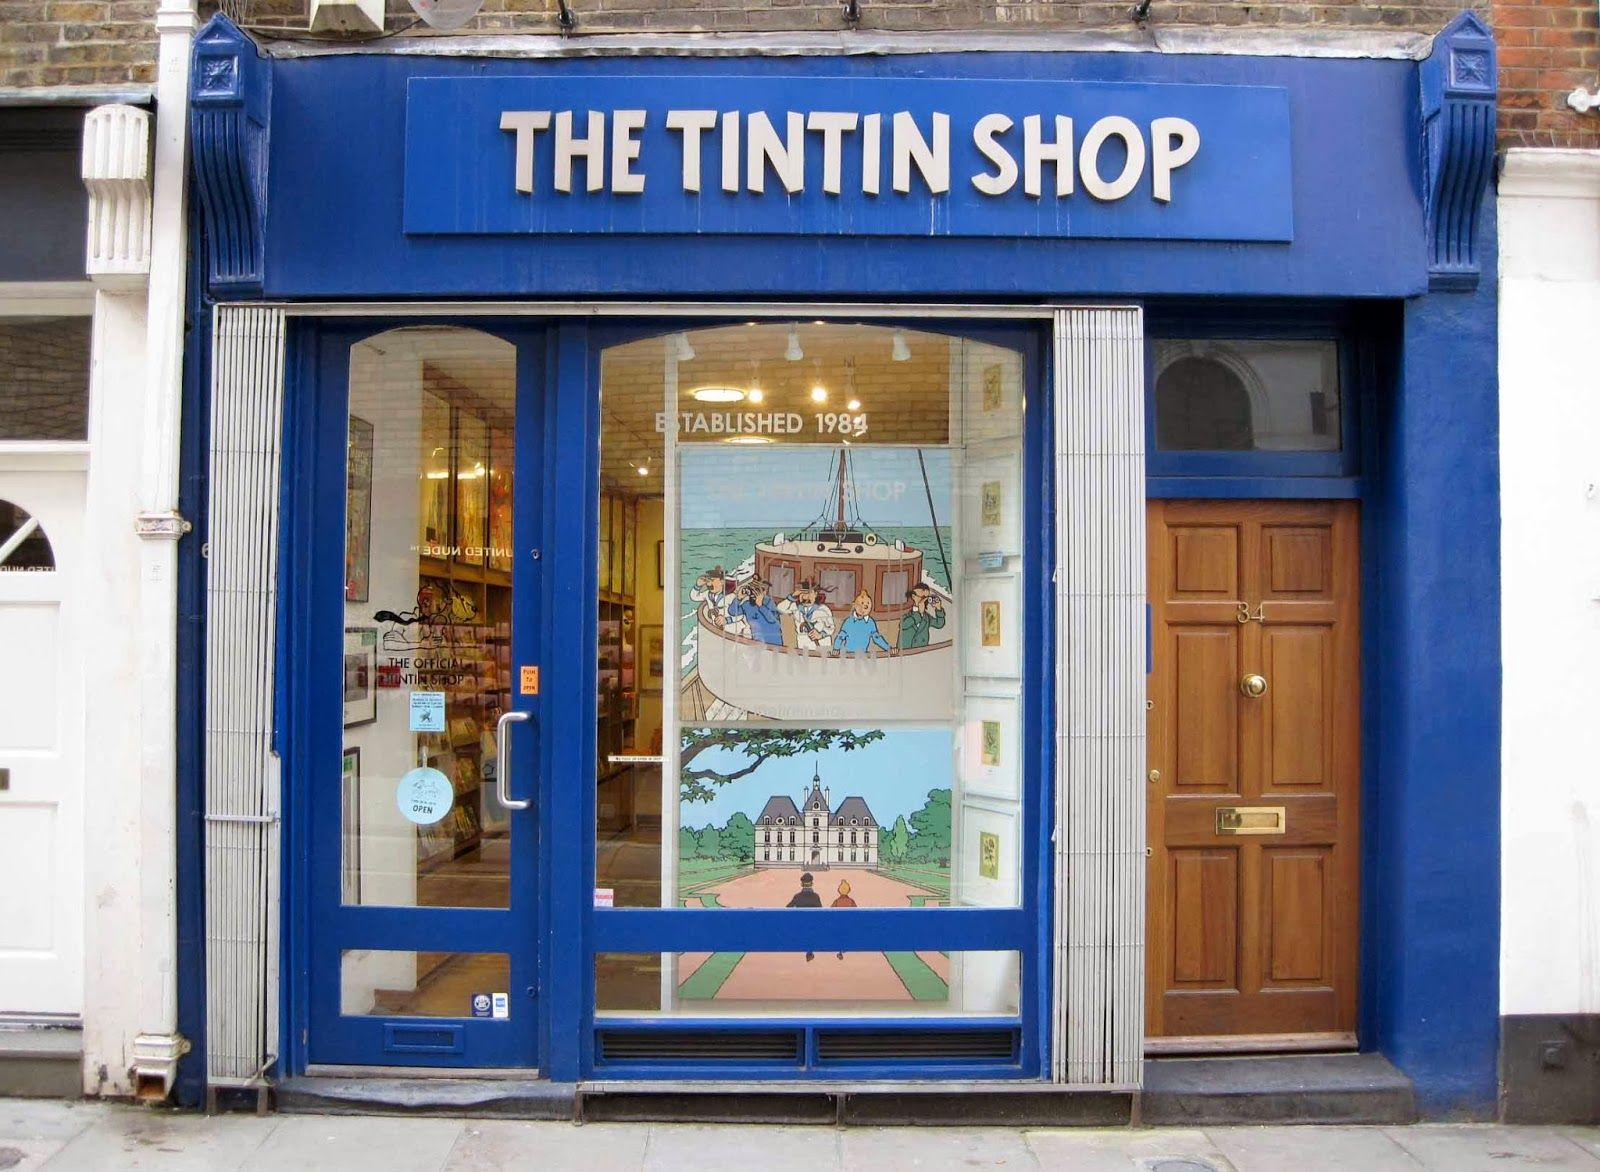 Tintin Shop Started in 1984, this is the place for books, posters, figures, bags and clothing - in fact, anything that can bear a Tintin logo or likeness of one of Hergé's characters. Extra points if you know that Hergé is one of that long list of famous Belgians.  34 Floral Street WC2 Tel: +44 (0)20 7836 1131 www.thetintinshop.uk.com